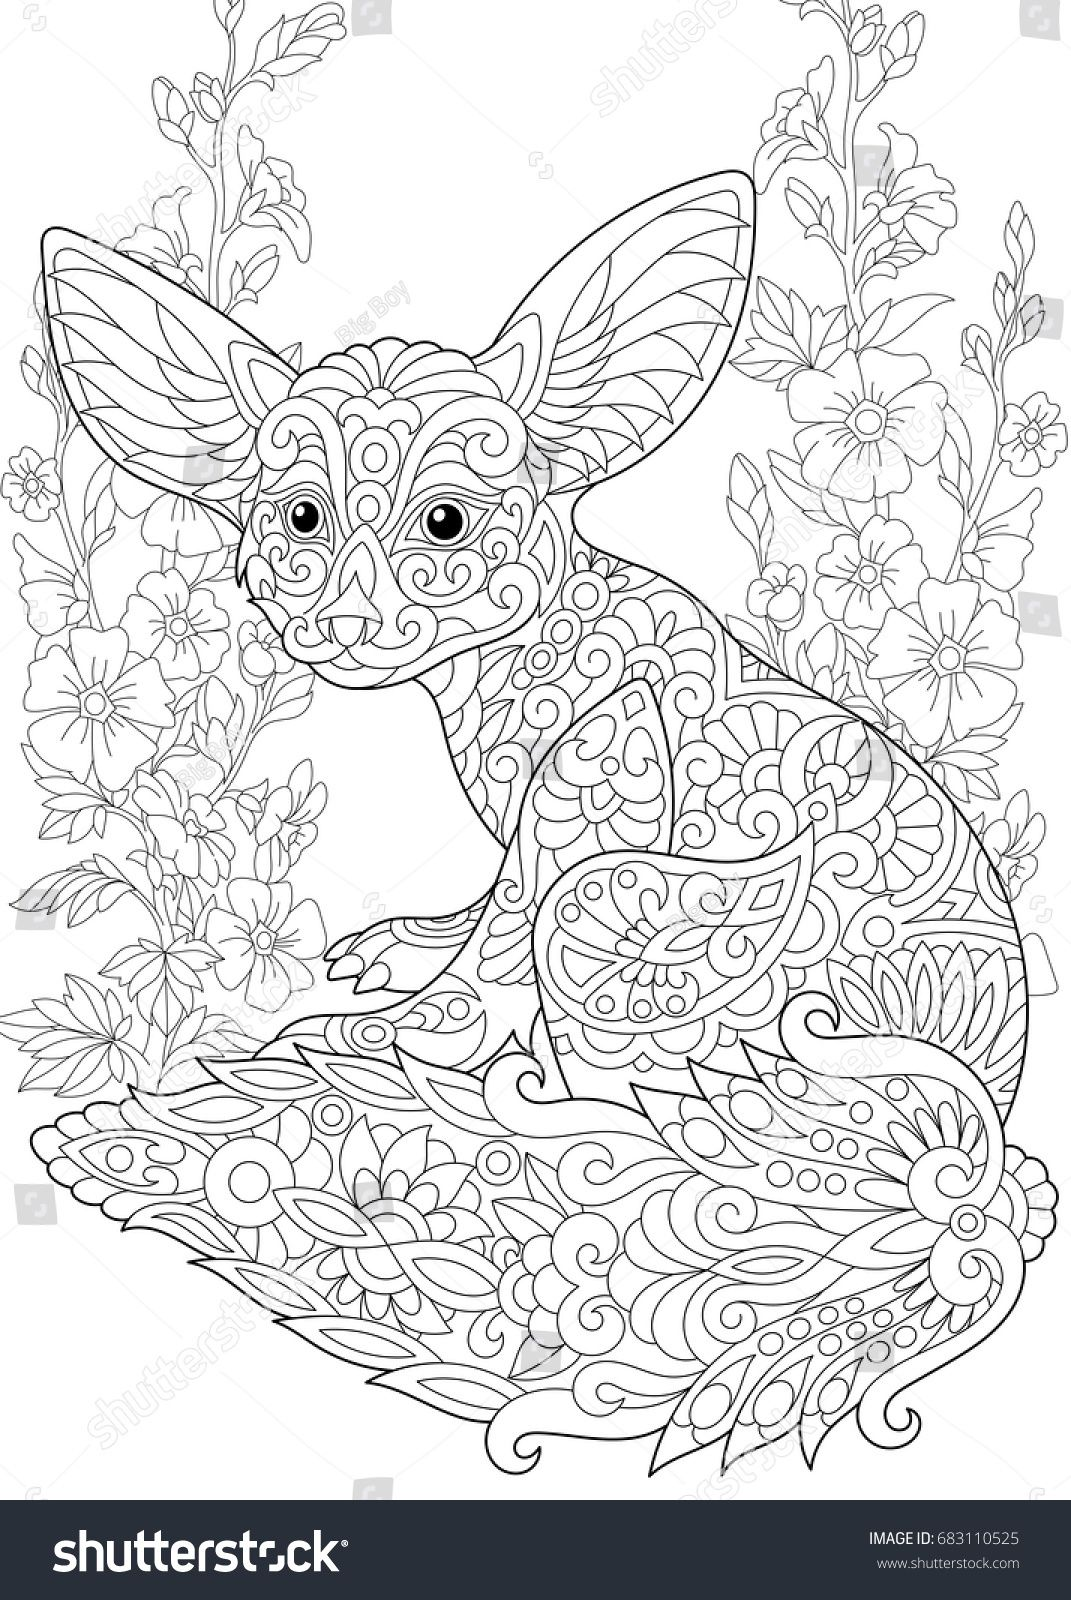 Coloring Page Fennec Fox And Mallow Flowers Freehand Sketch